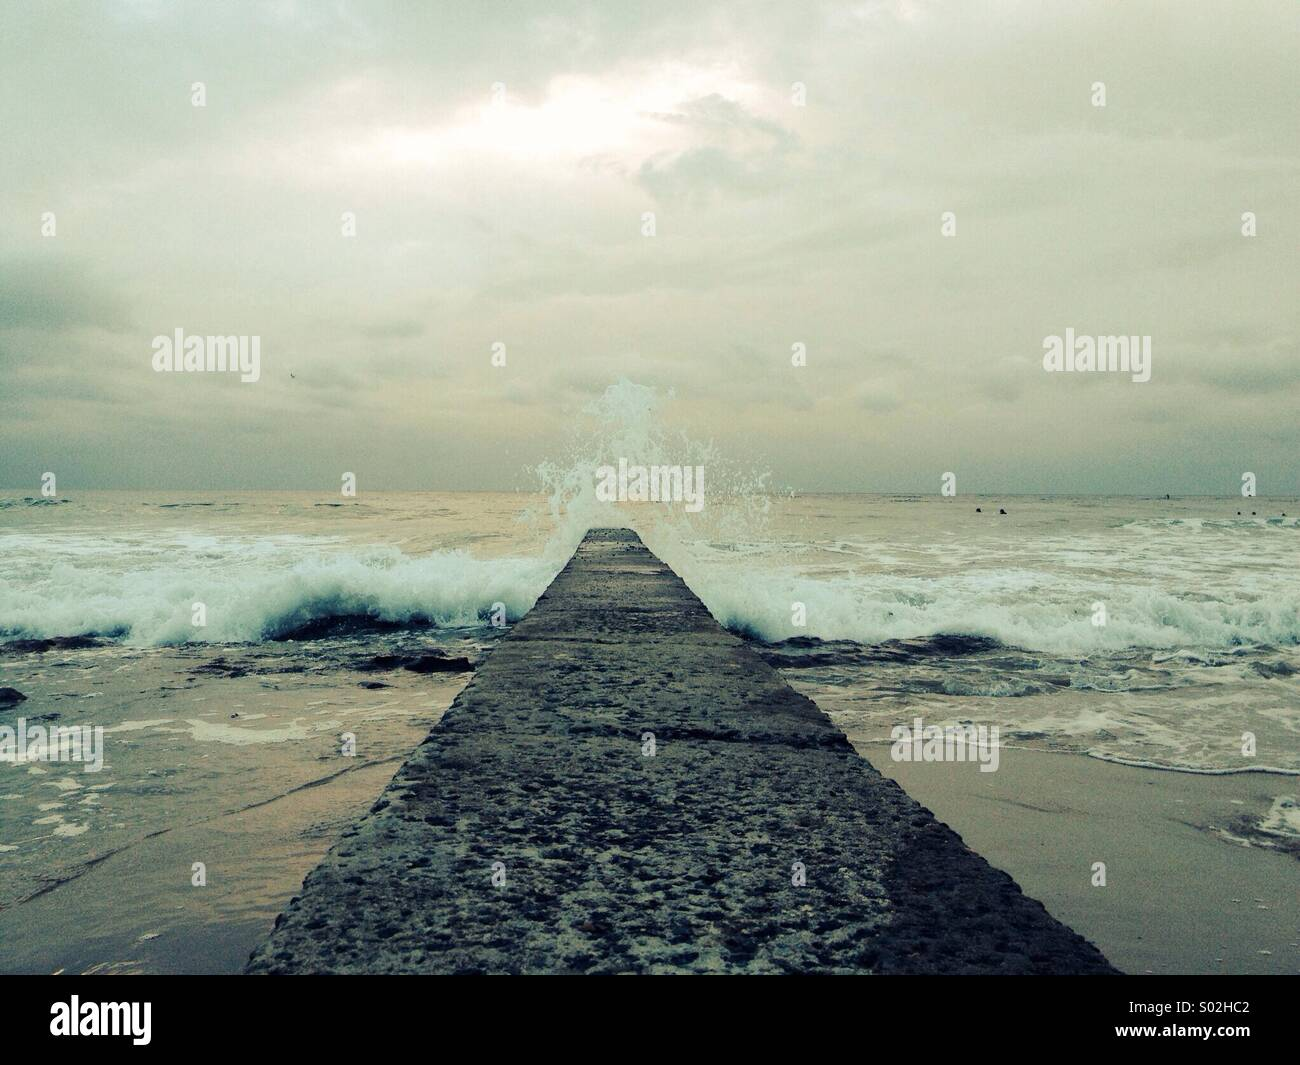 Ocean waves crashing on the jetty under a cloudy sky - Stock Image